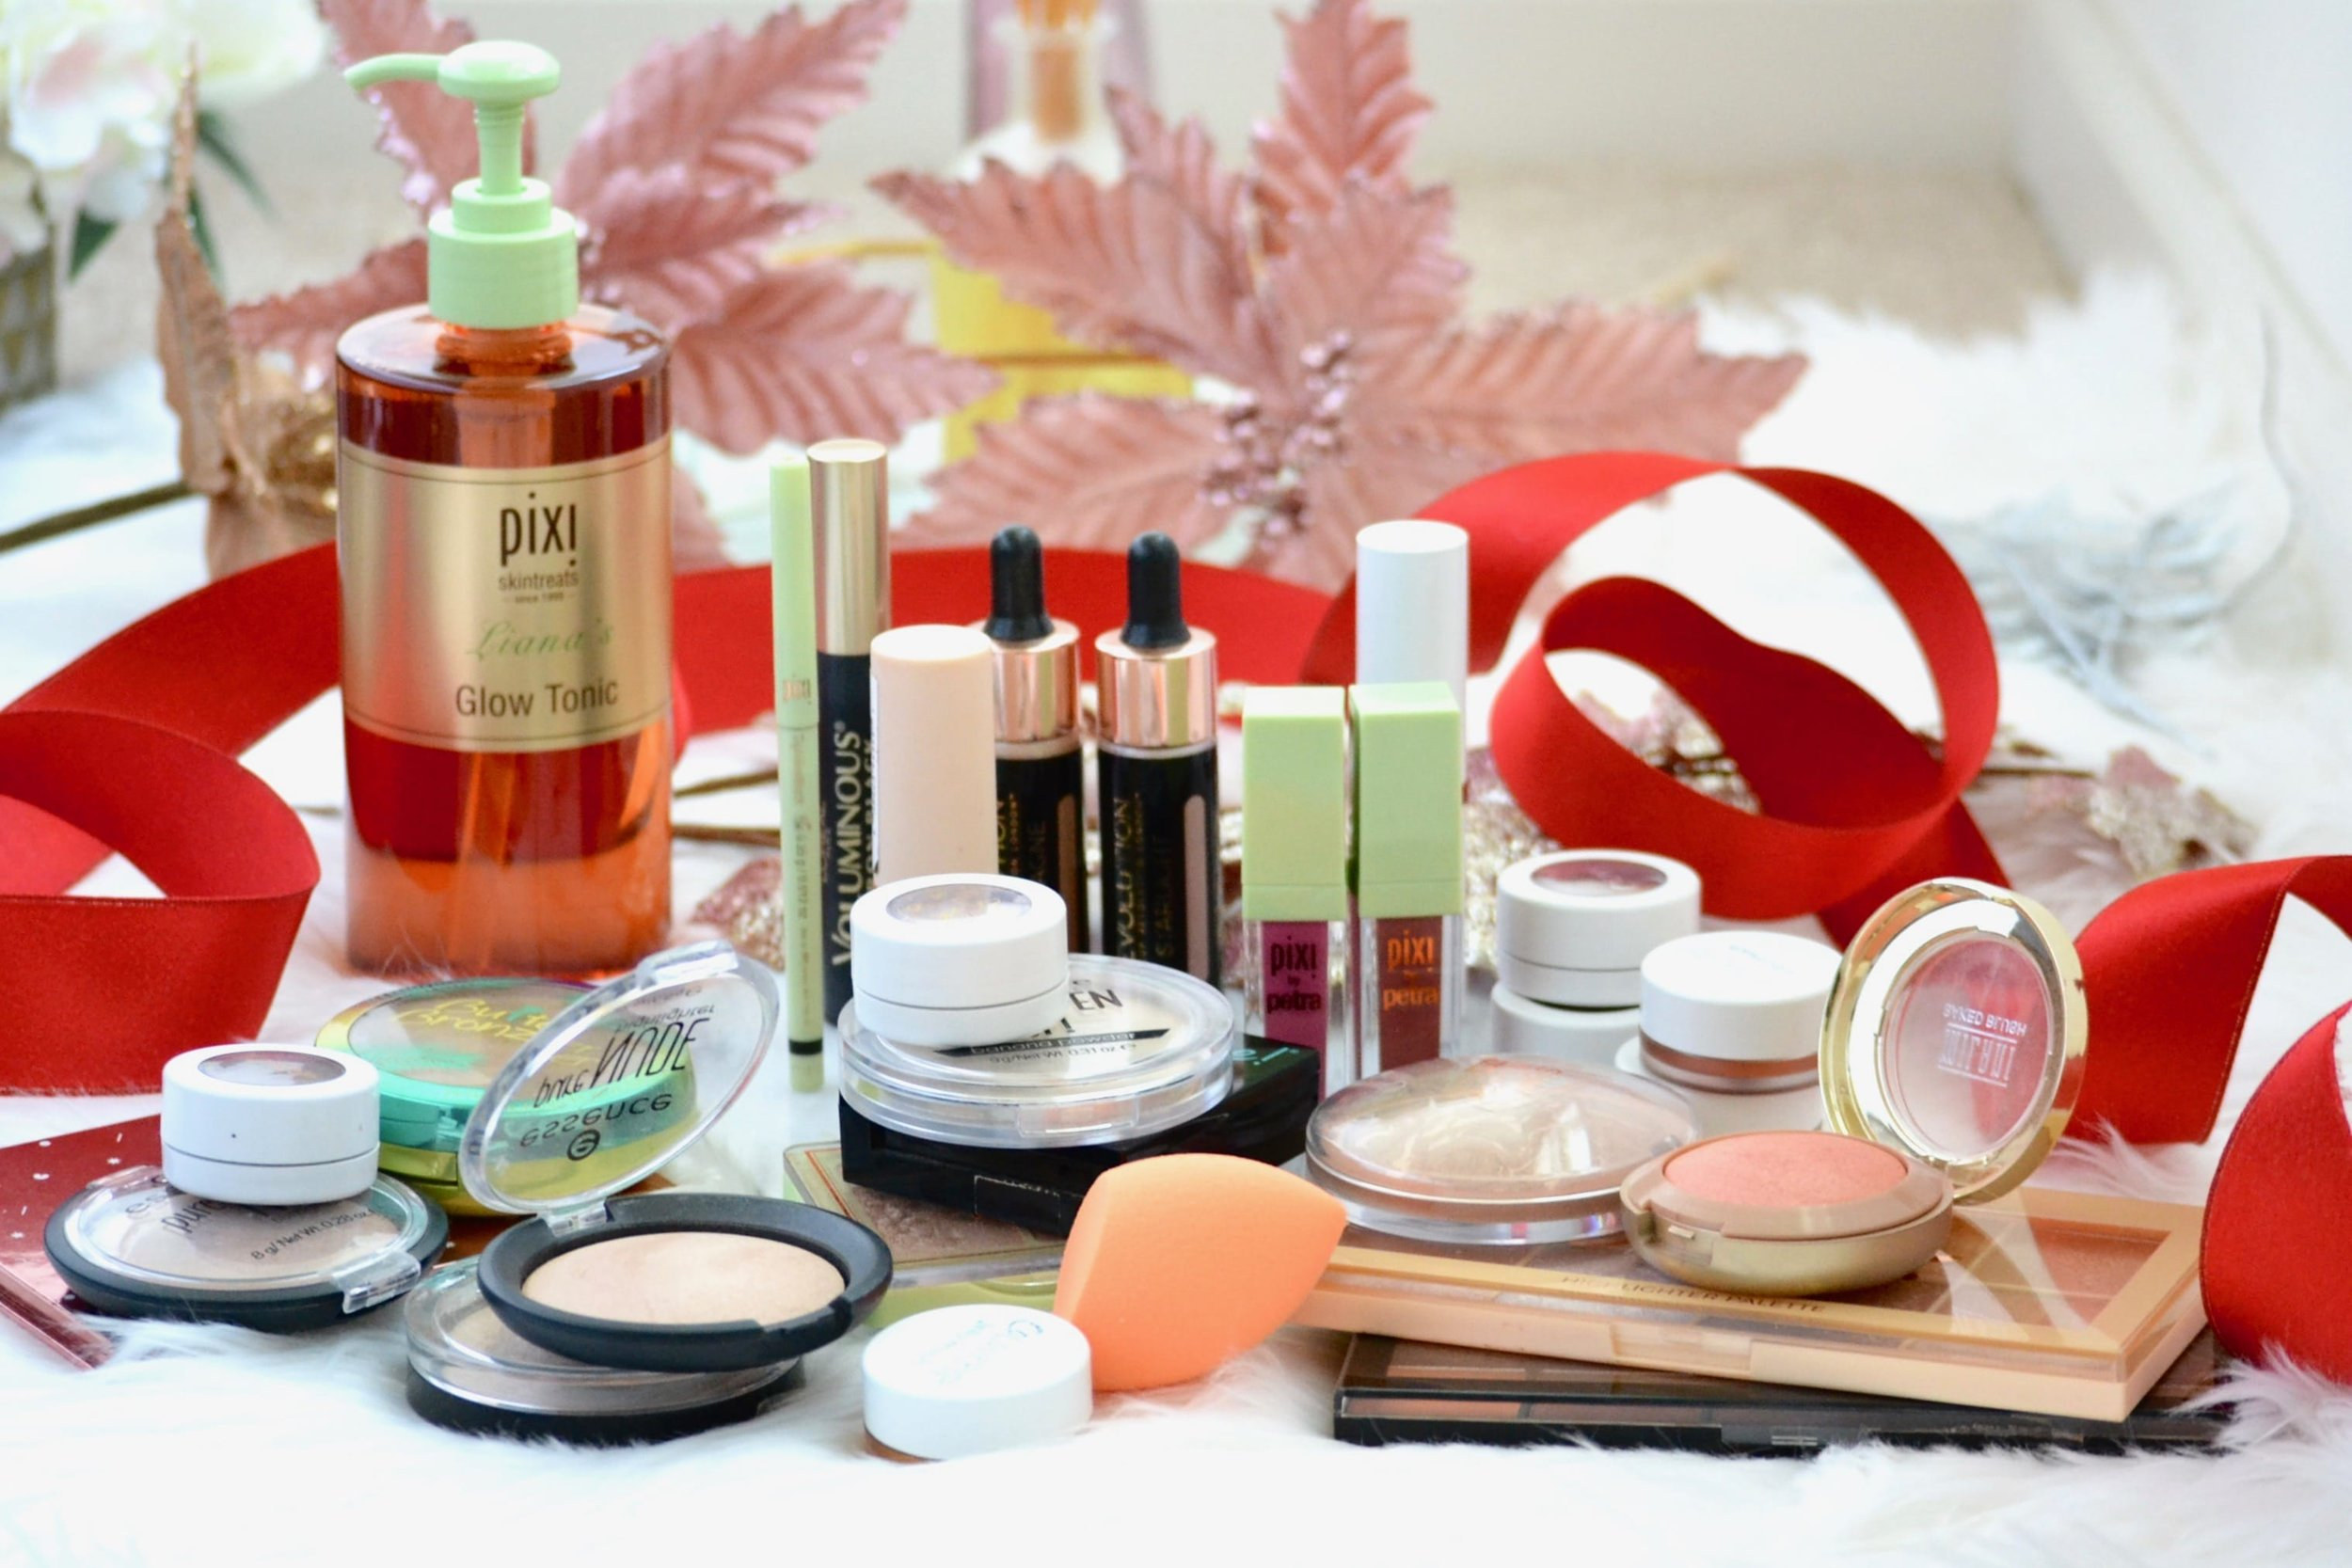 2018 was a great year for drugstore makeup and I tried out so many awesome products! After trying out tons of drugstore makeup, I compiled a list of the best of the best drugstore makeup out there! Check out what products made my list of the top drugstore makeup of 2018! #drugstore #makeup #affordable #budget